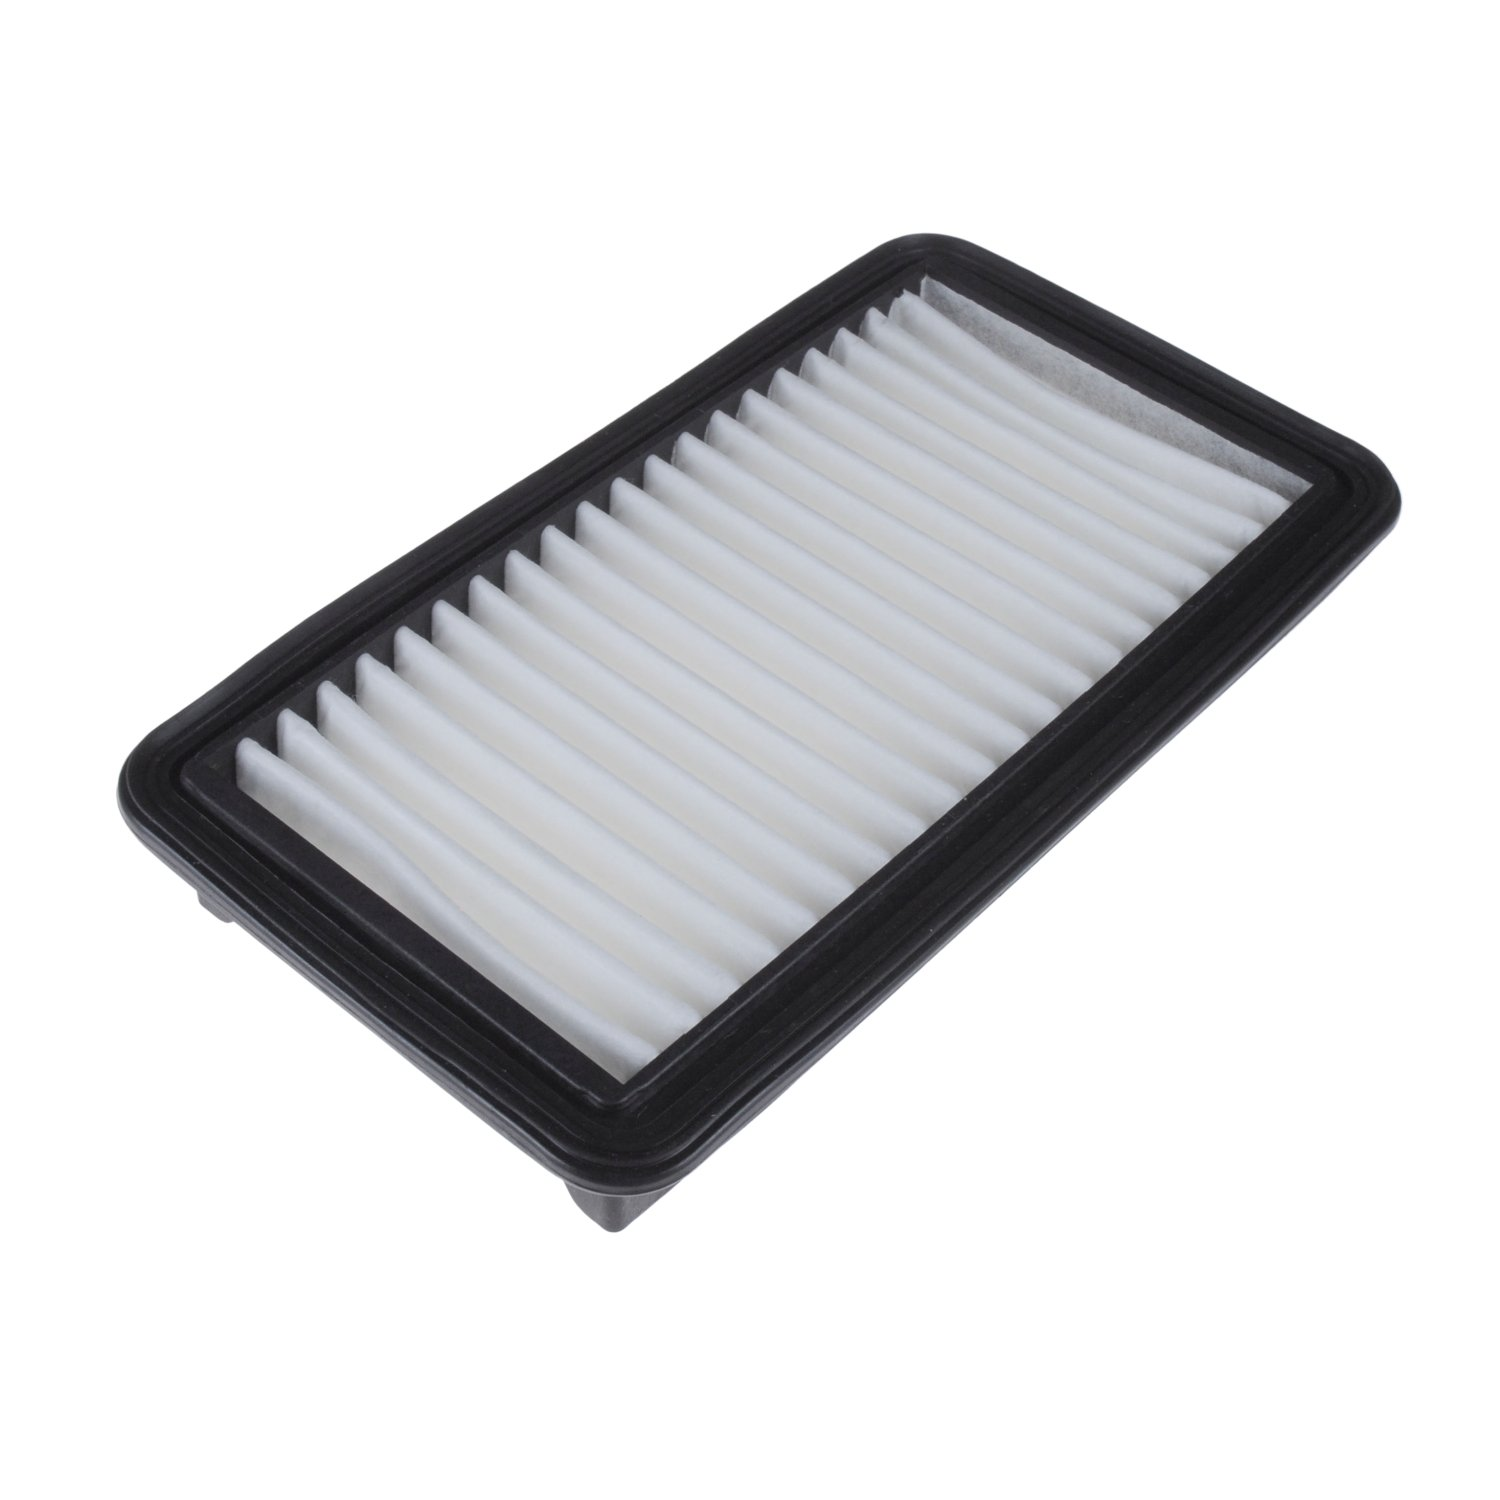 Blue Print ADK82237 air filter  - Pack of 1 Automotive Distributors Limited